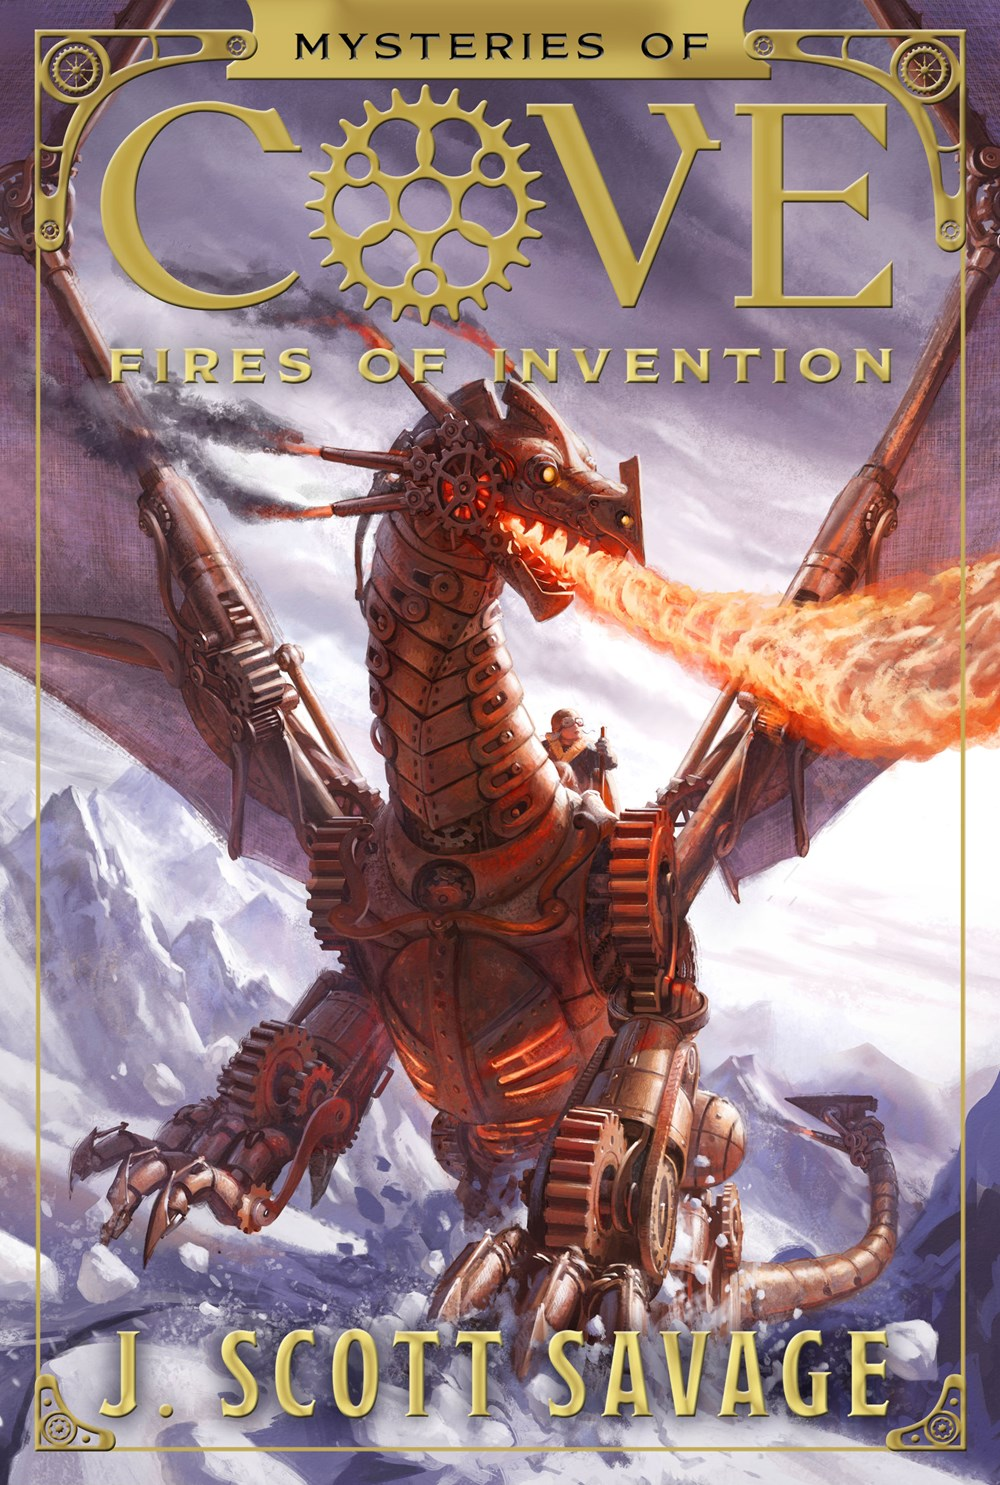 Fires of Invention (Mysteries of Cove Series)